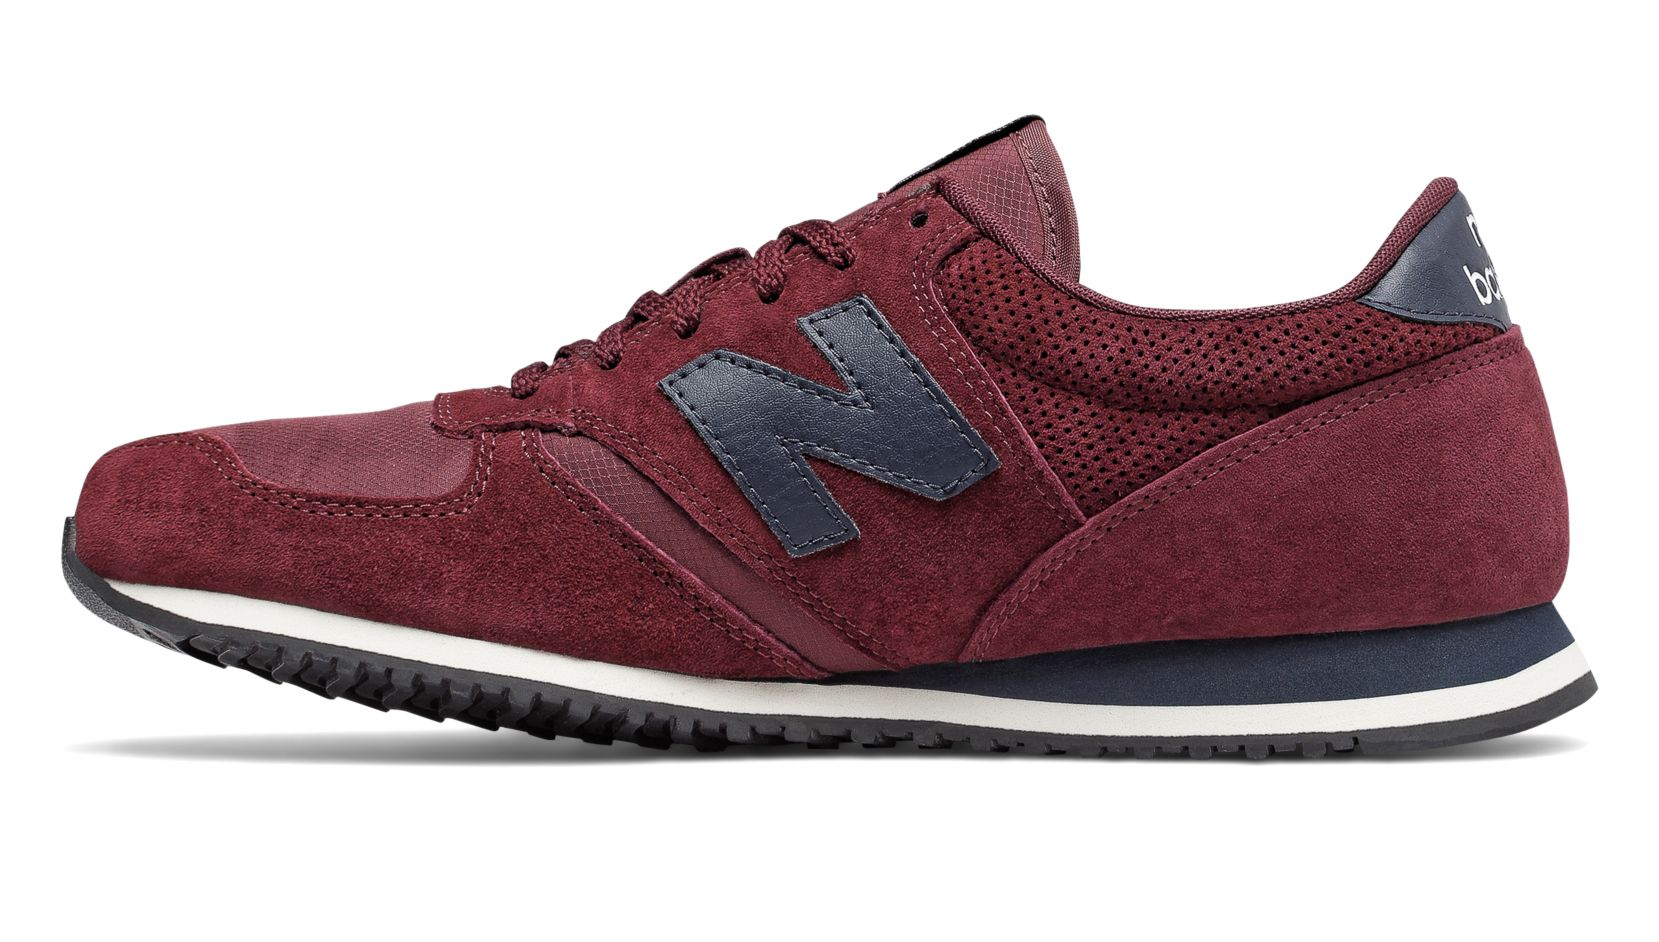 new balance 420 burgundy with navy